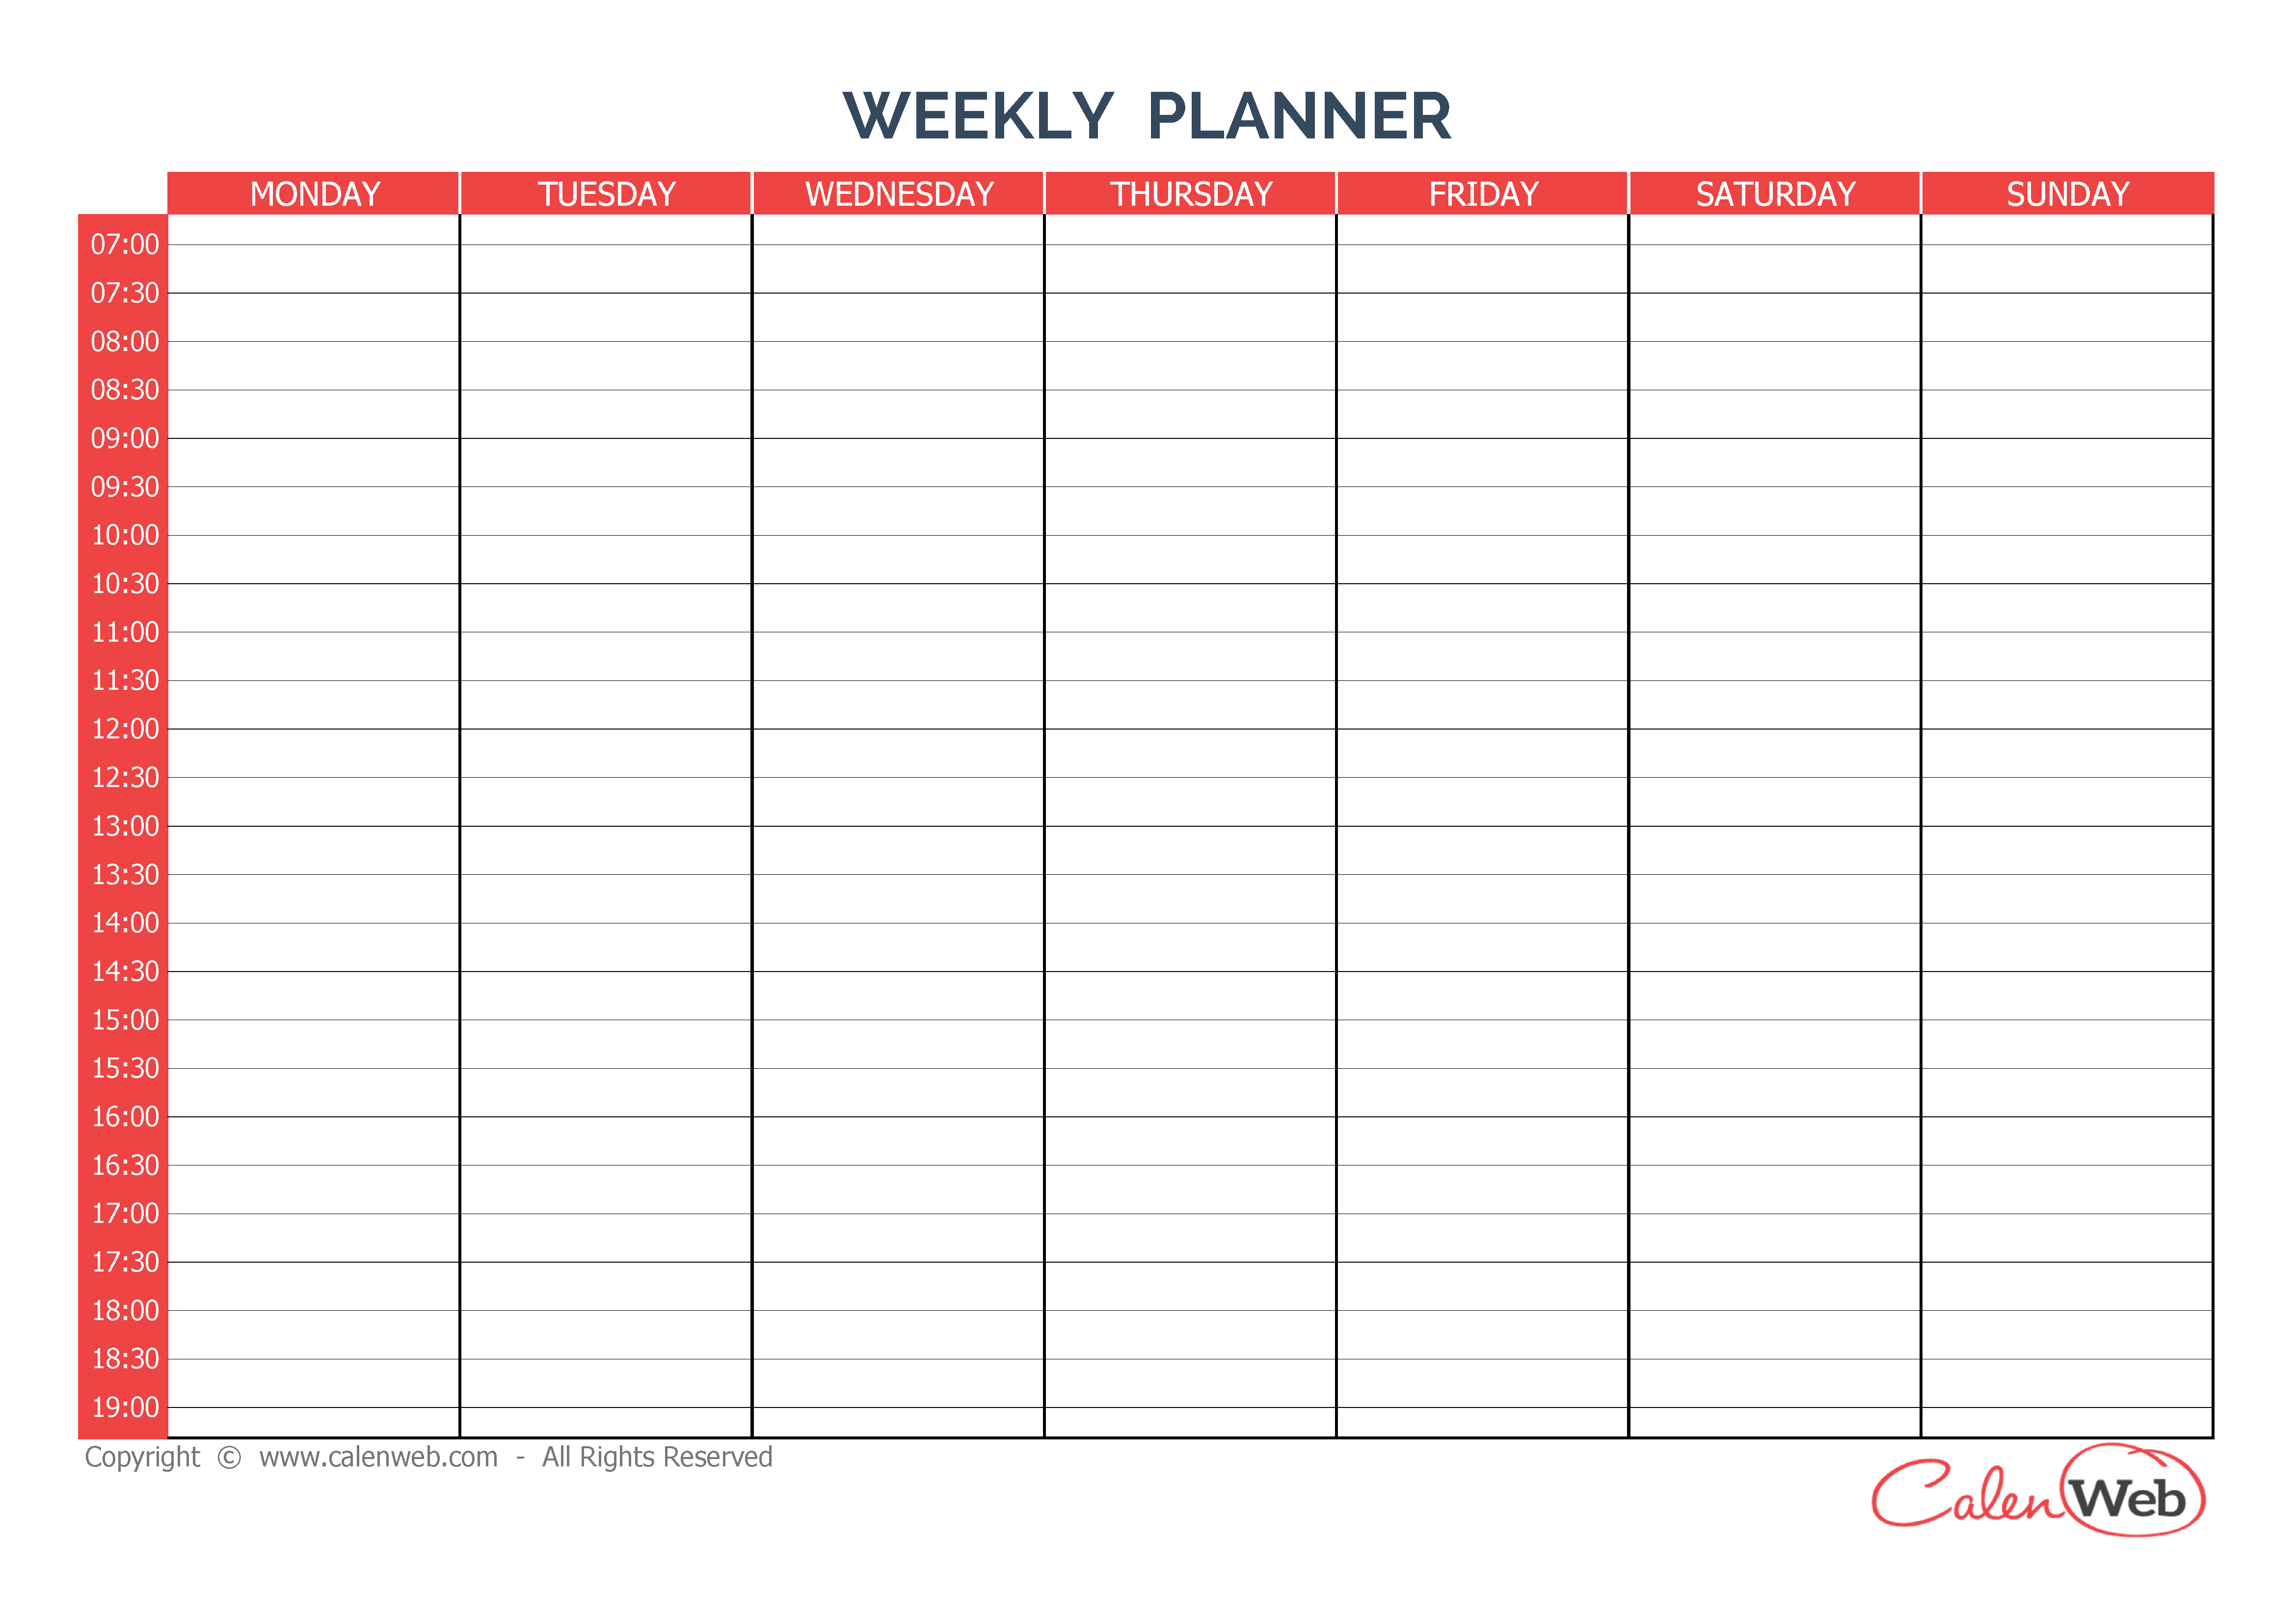 7Day Weekly Planner Template